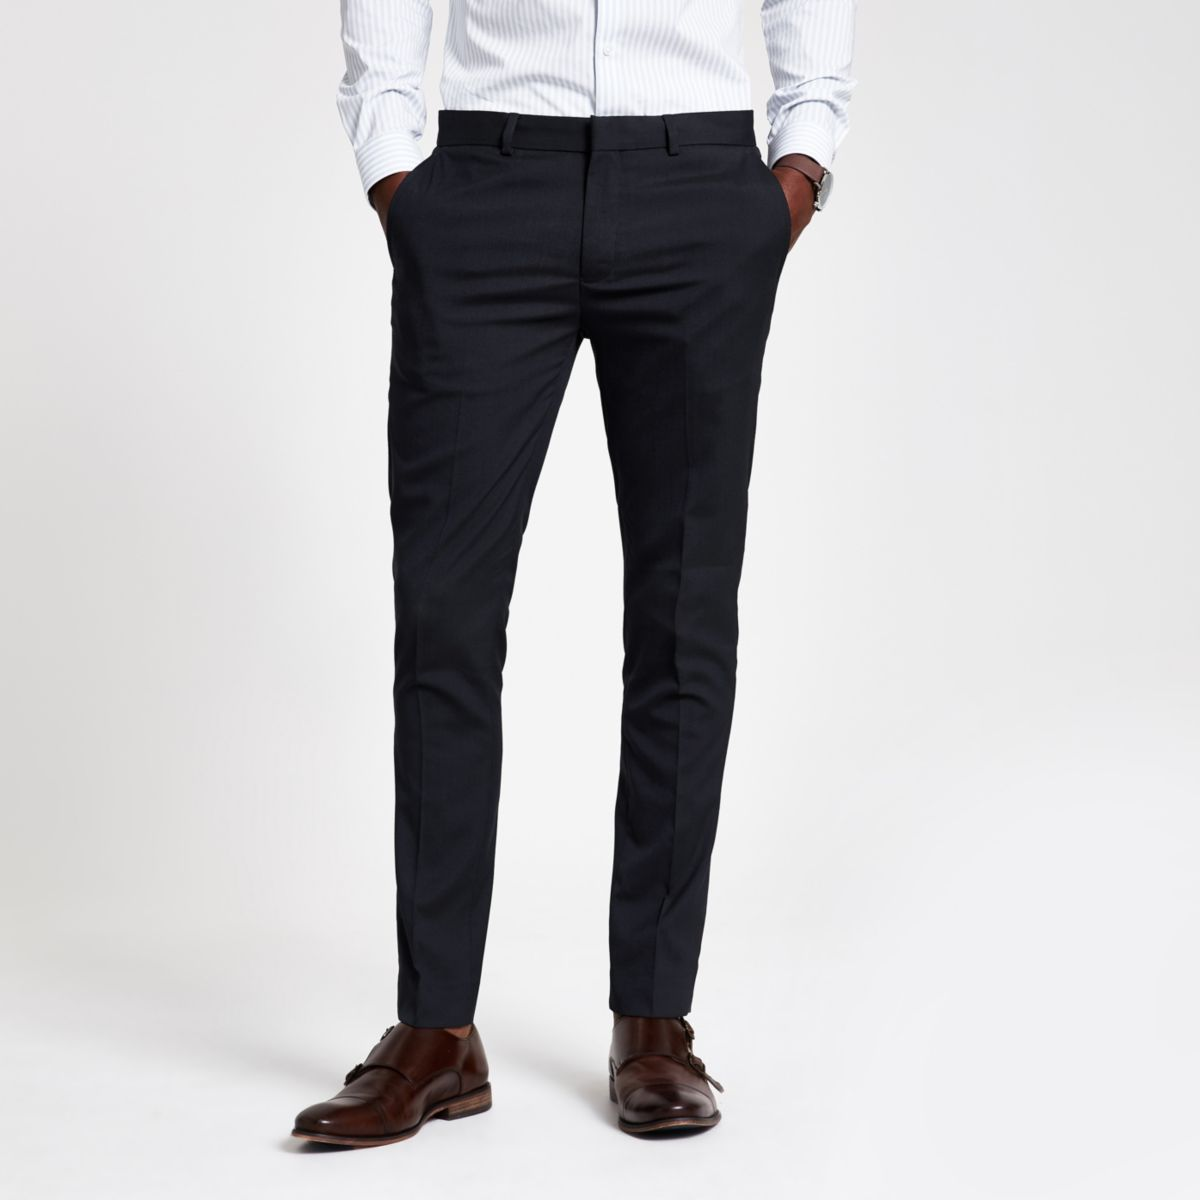 Navy ultra skinny fit smart pants